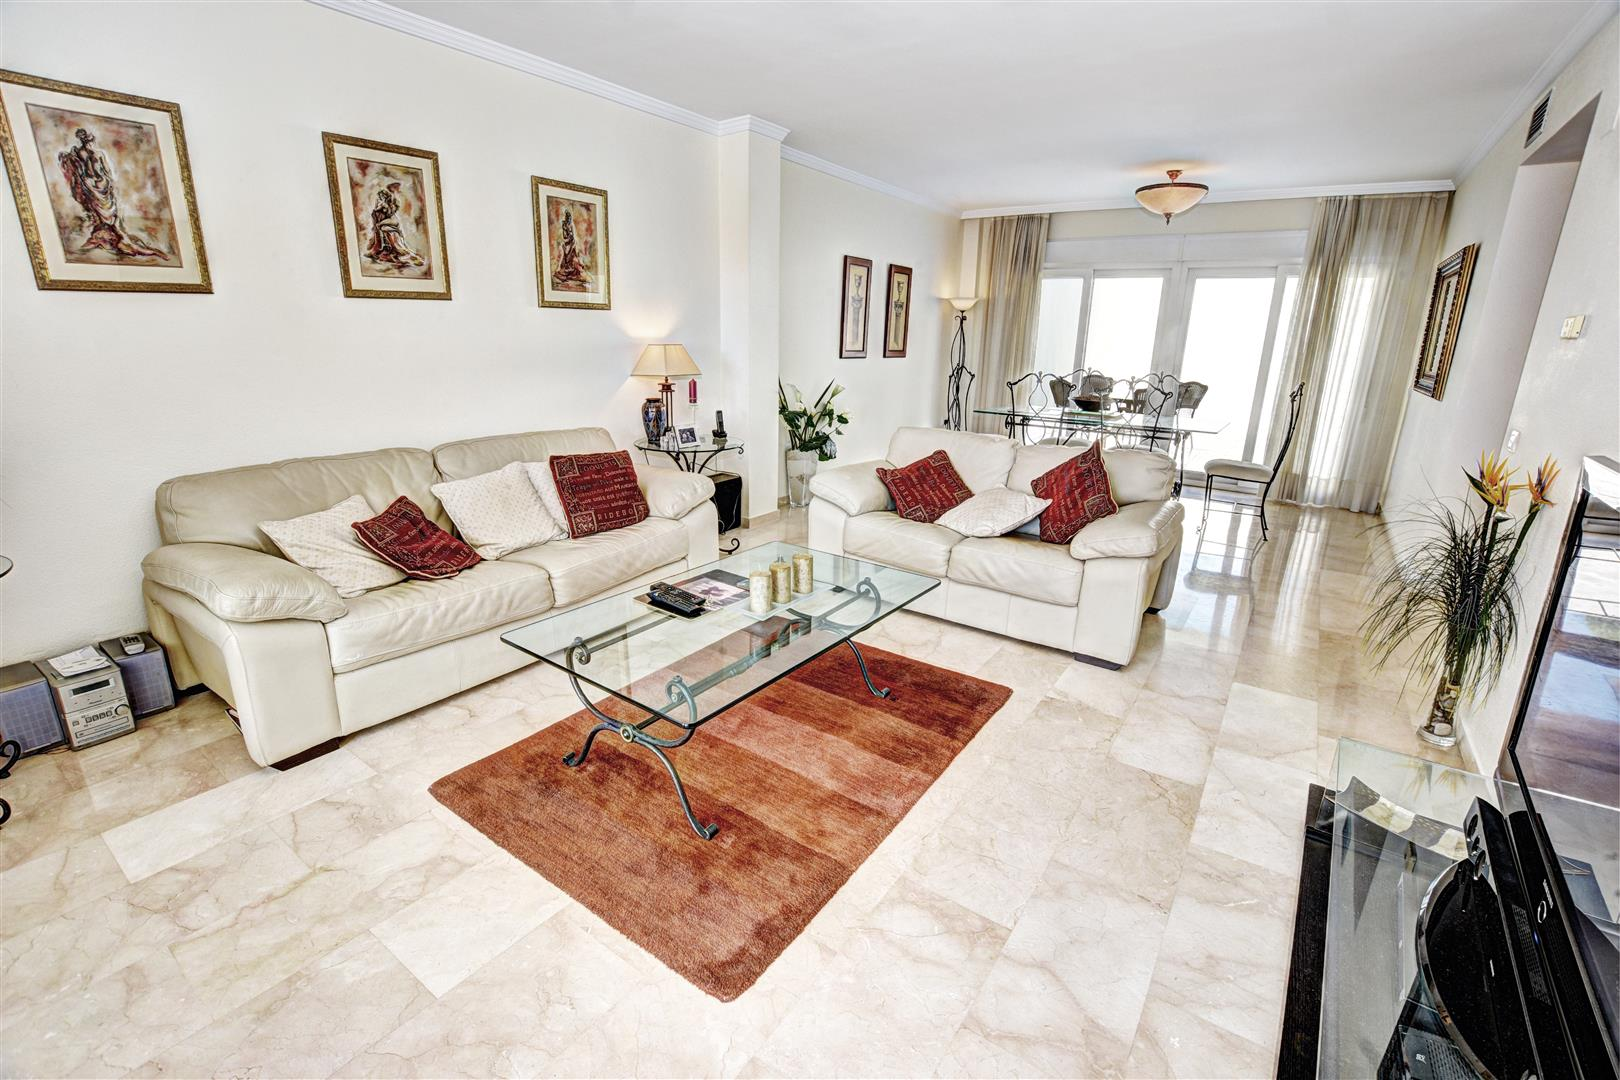 3 Bedroom Apartment for Sale in Hill Views Nueva Torrequebrada 020_1_2_3_4_5 (La